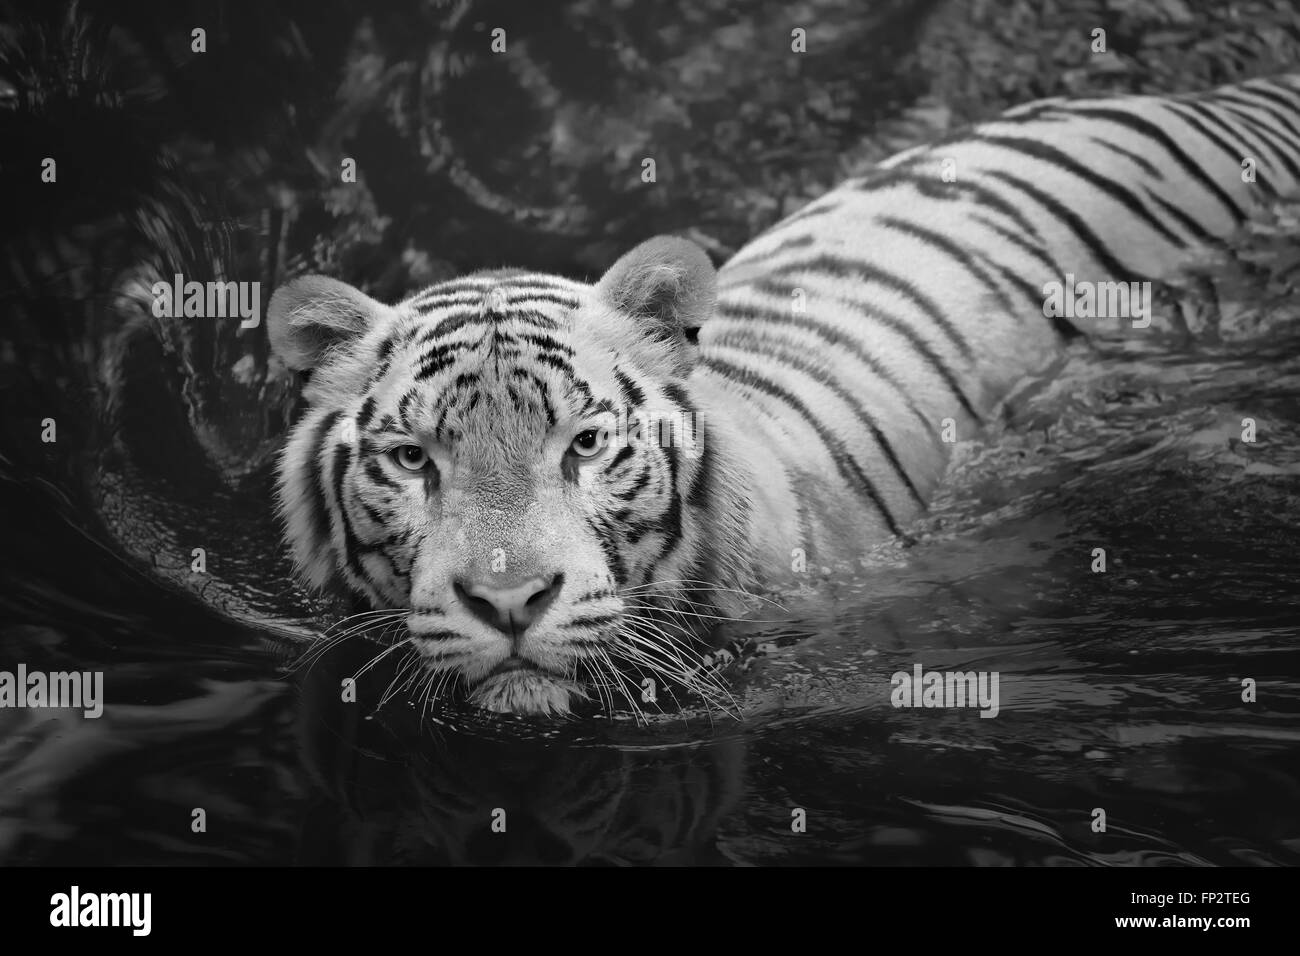 White Tiger Symbol Of Success And Might Stock Photo 99637400 Alamy